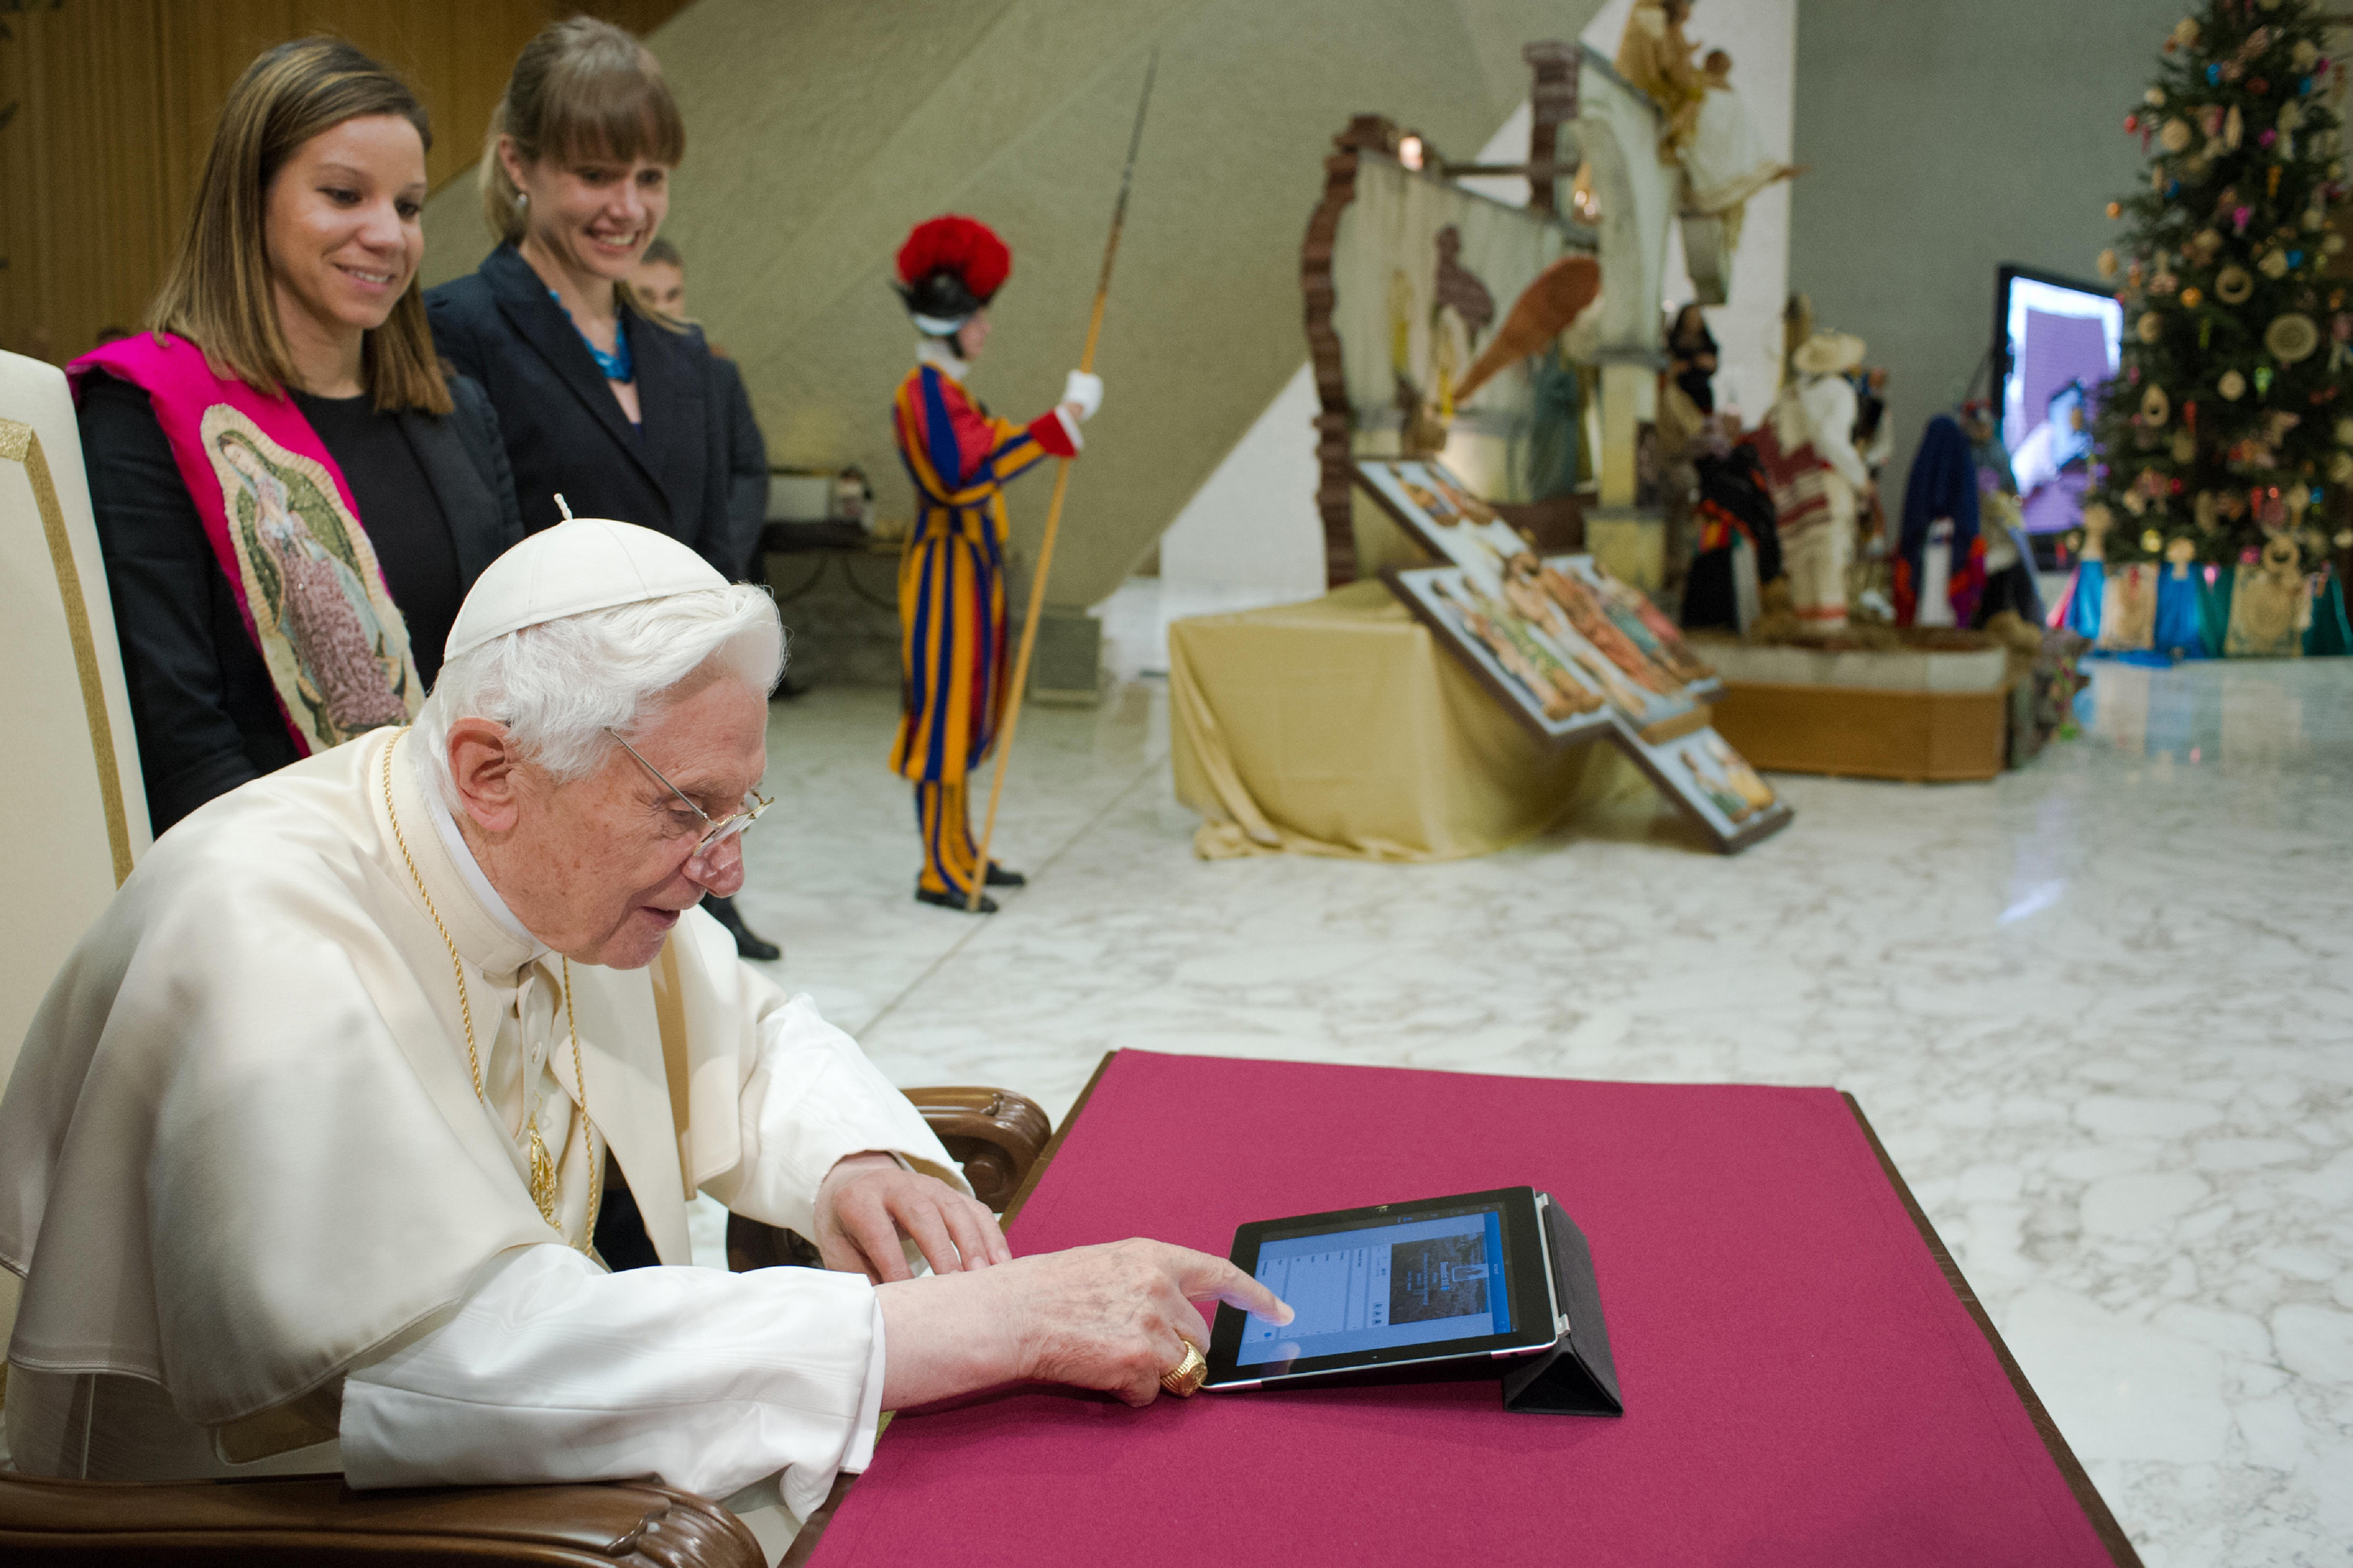 Pope Benedict XVI posts his first tweet using an iPad tablet after his Wednesday general audience in Paul VI's Hall at the Vatican.